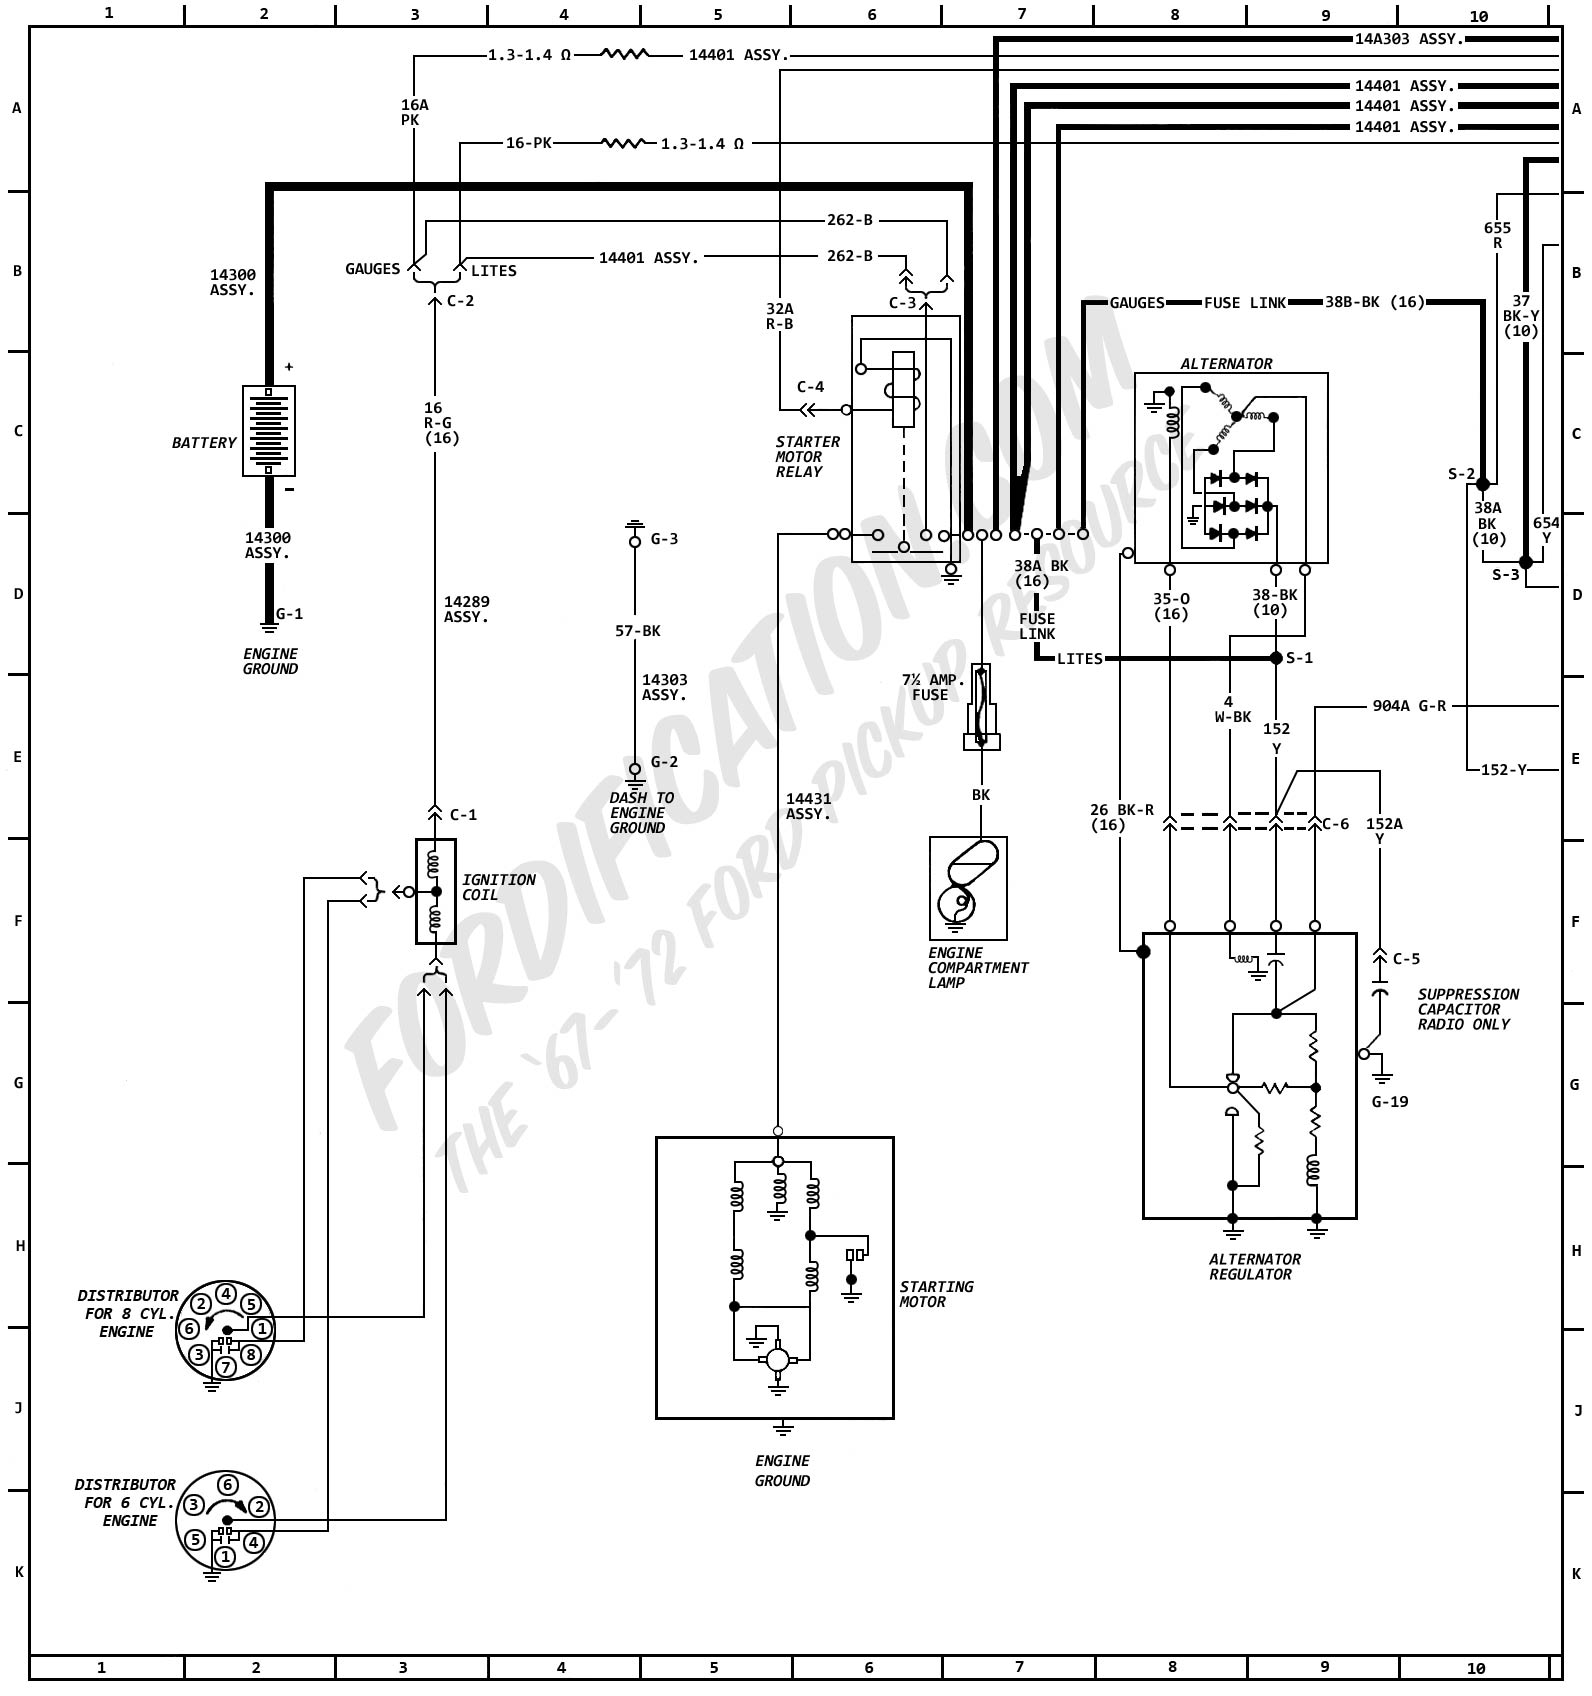 Turn Signal Switch Diagram 1979 Get Free Image About Wiring For Schematic And 1972 Ford Ignition Schema Diagrams